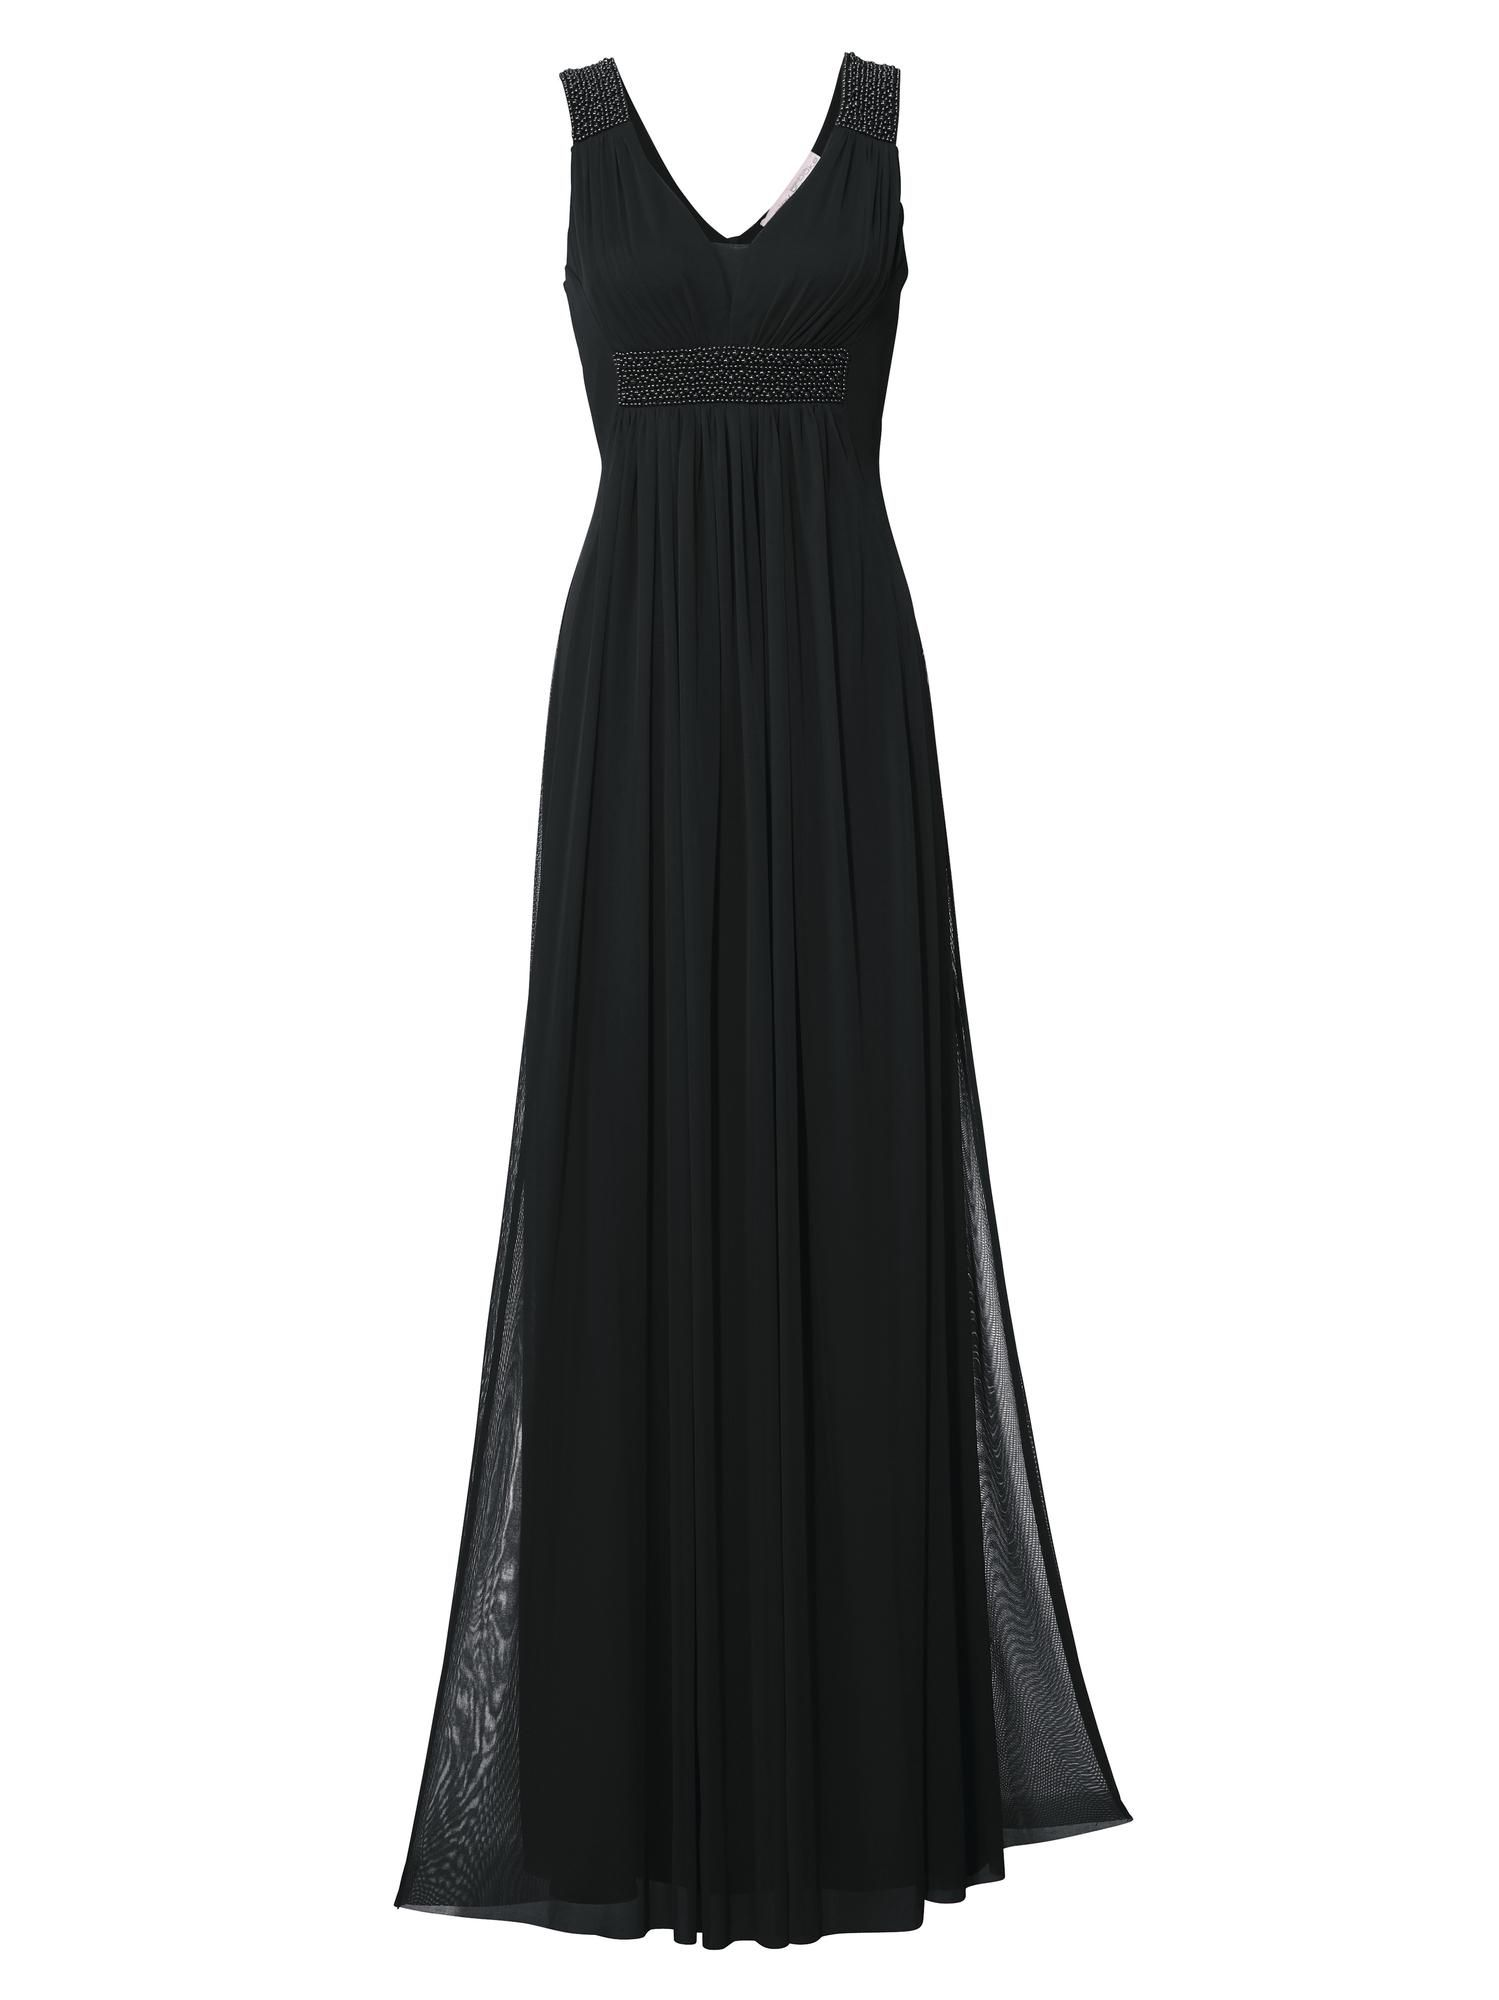 Ashley Brooke By Heine Abendkleid mit Zierperlen in Schwarz bei ...